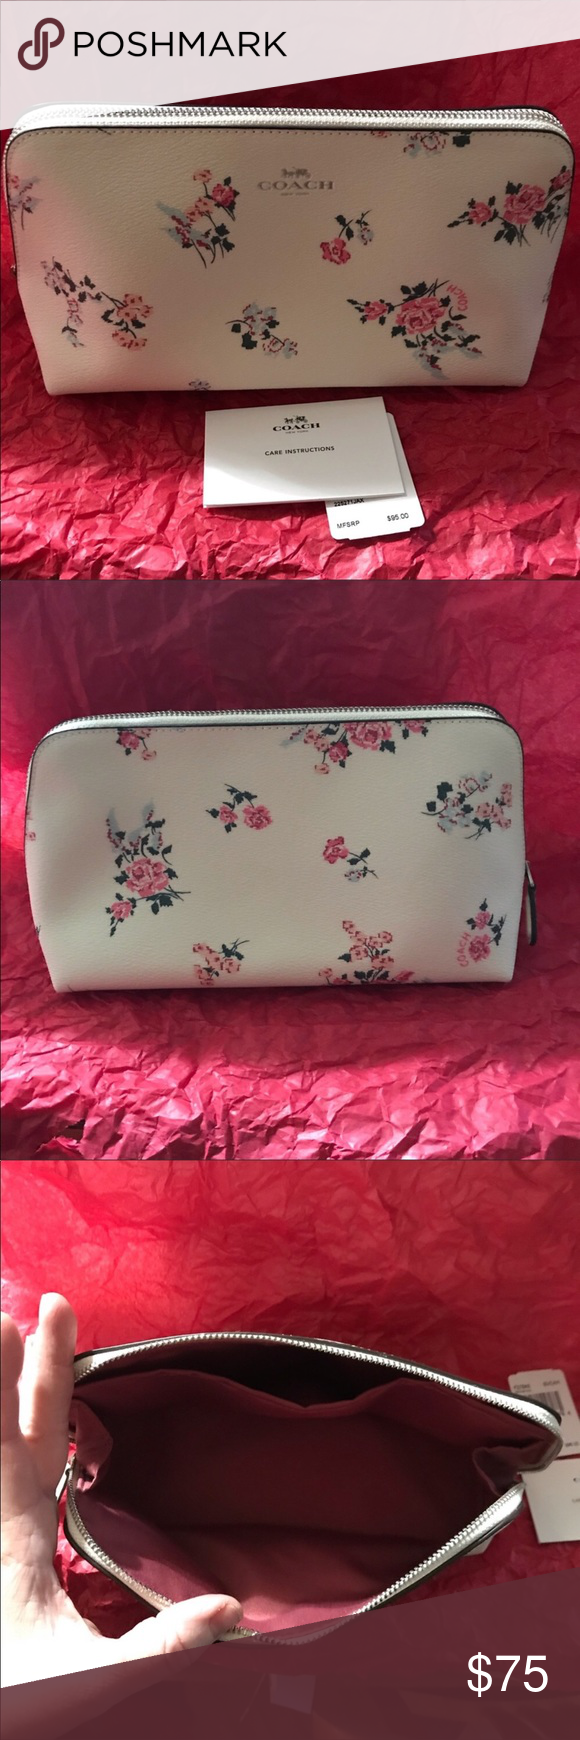 Coach Floral Cosmetic Bag I had two of these that I had